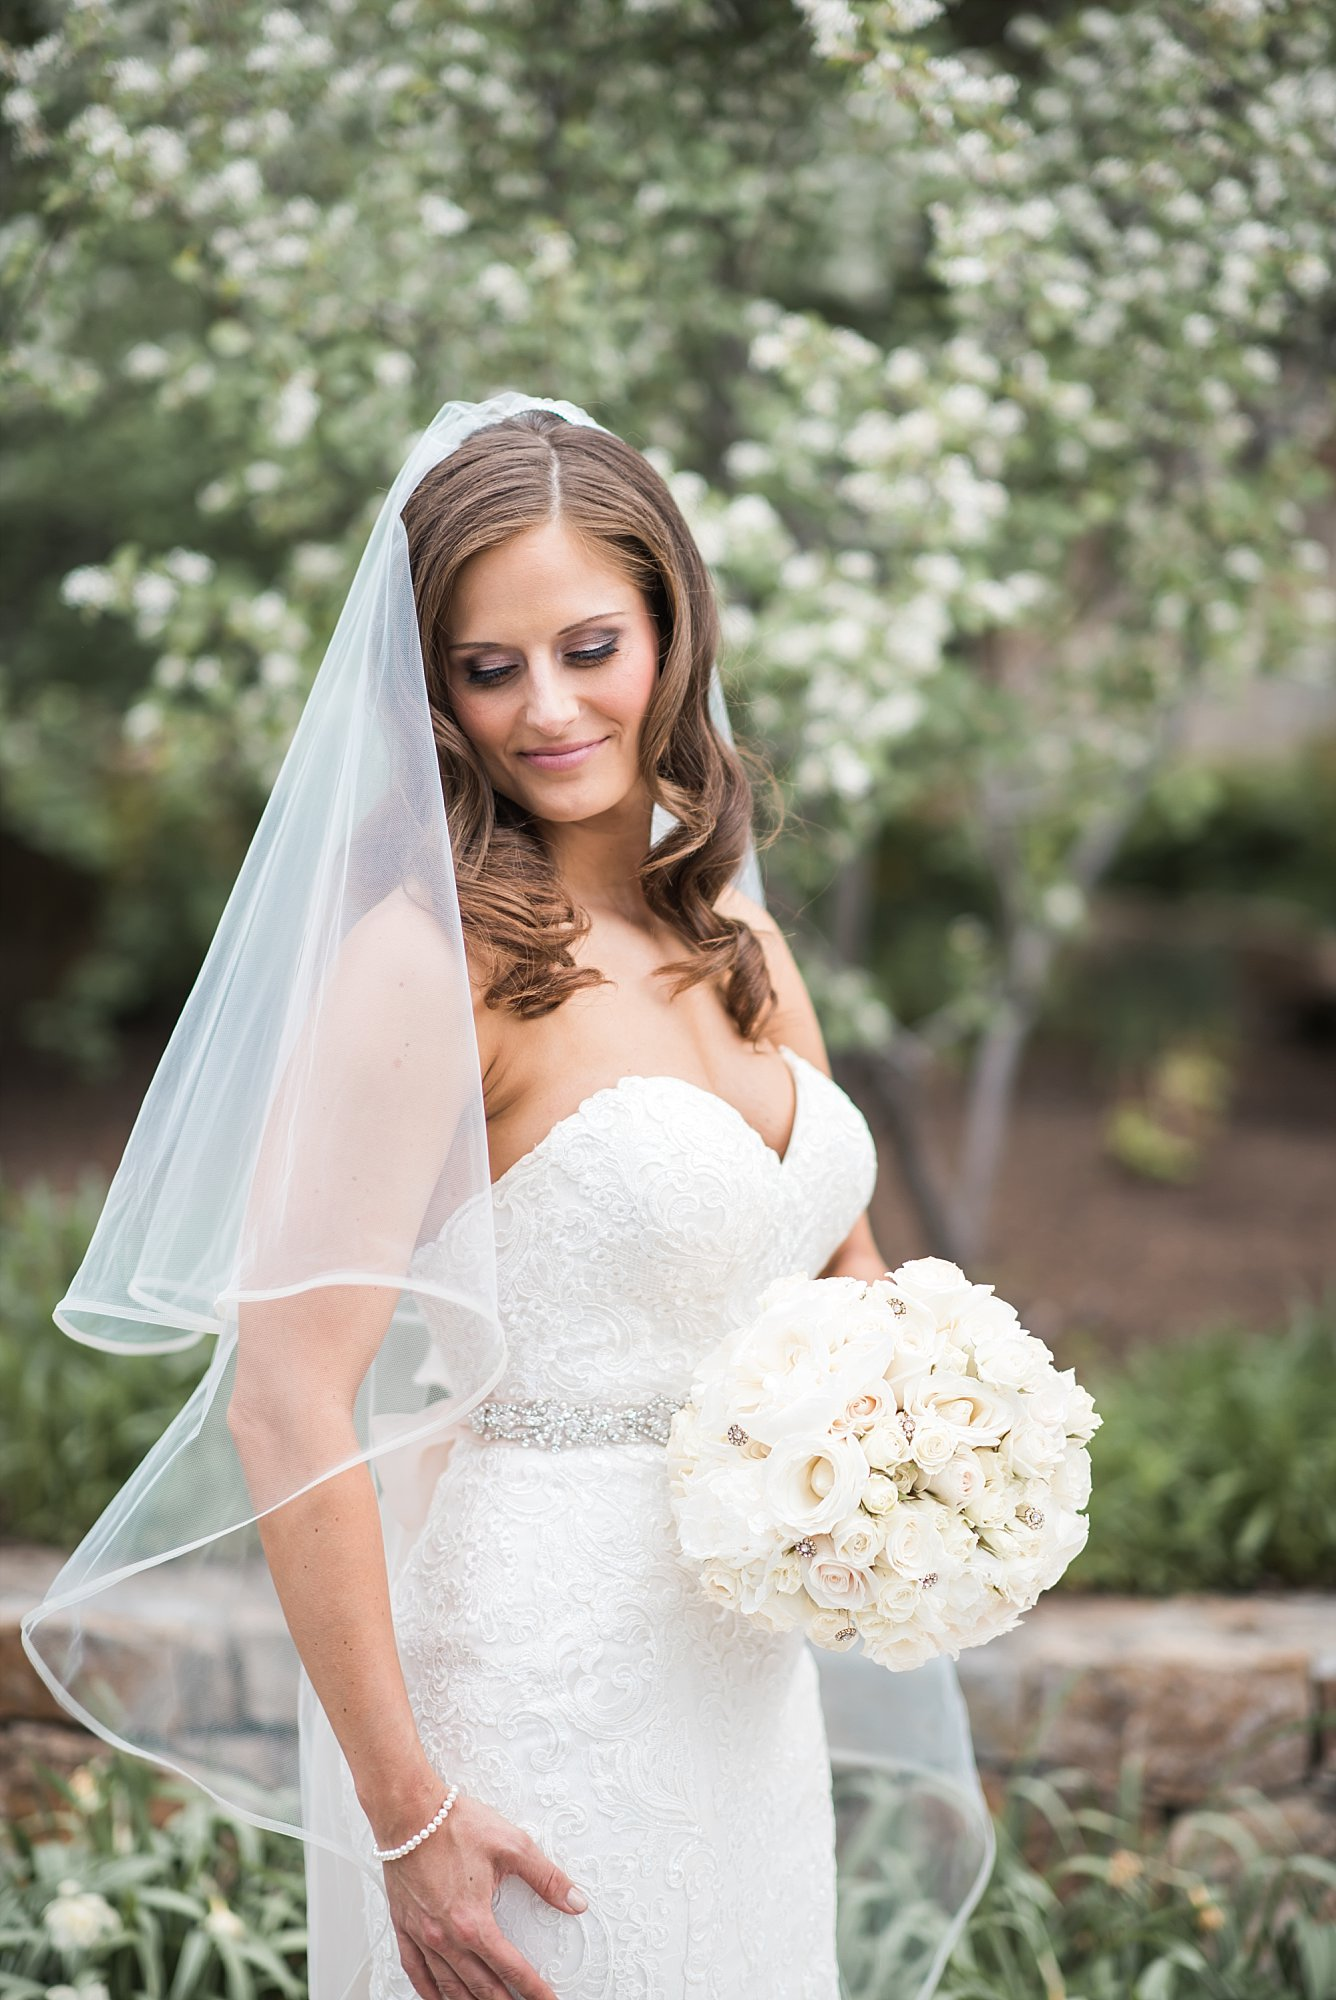 Wedding Hair And Makeup Vail Co